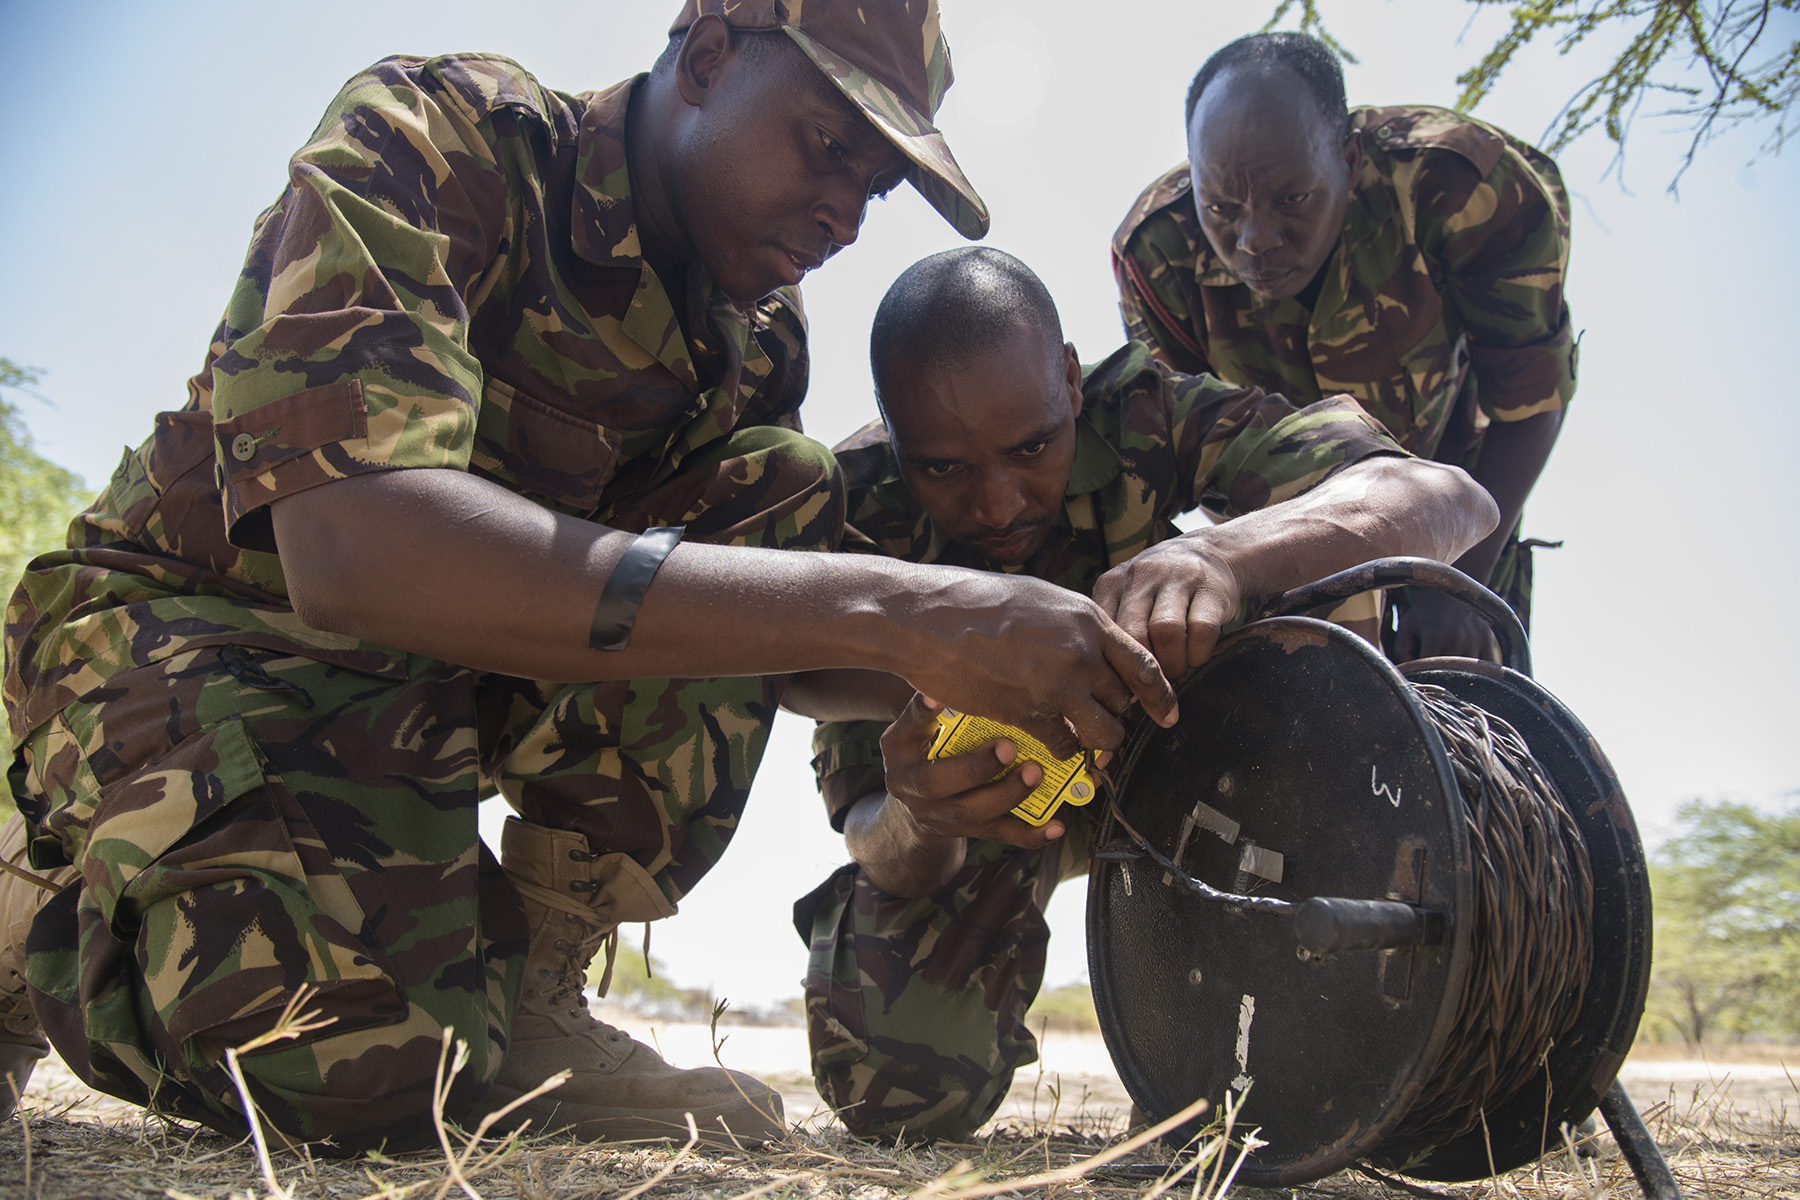 KENYA- Kenya Defense Forces combat engineers practice setting up an electric demolition with mock training aids during Deliberate Kindle 2016, Sept. 16, at a training center in Kenya. U.S. Navy Task Force Sparta explosive ordnance disposal technicians and a dive independent duty corpsman, assigned to Combined Joint Task Force-Horn of Africa, provided counter-improvised explosive device, tactical combat medical care, and train-the-trainer skills to approximately 53 KDF soldiers and officers in preparation the KDF's deployment with the African Union Mission in Somalia. (U.S. Air Force photo by Staff Sgt. Tiffany DeNault)